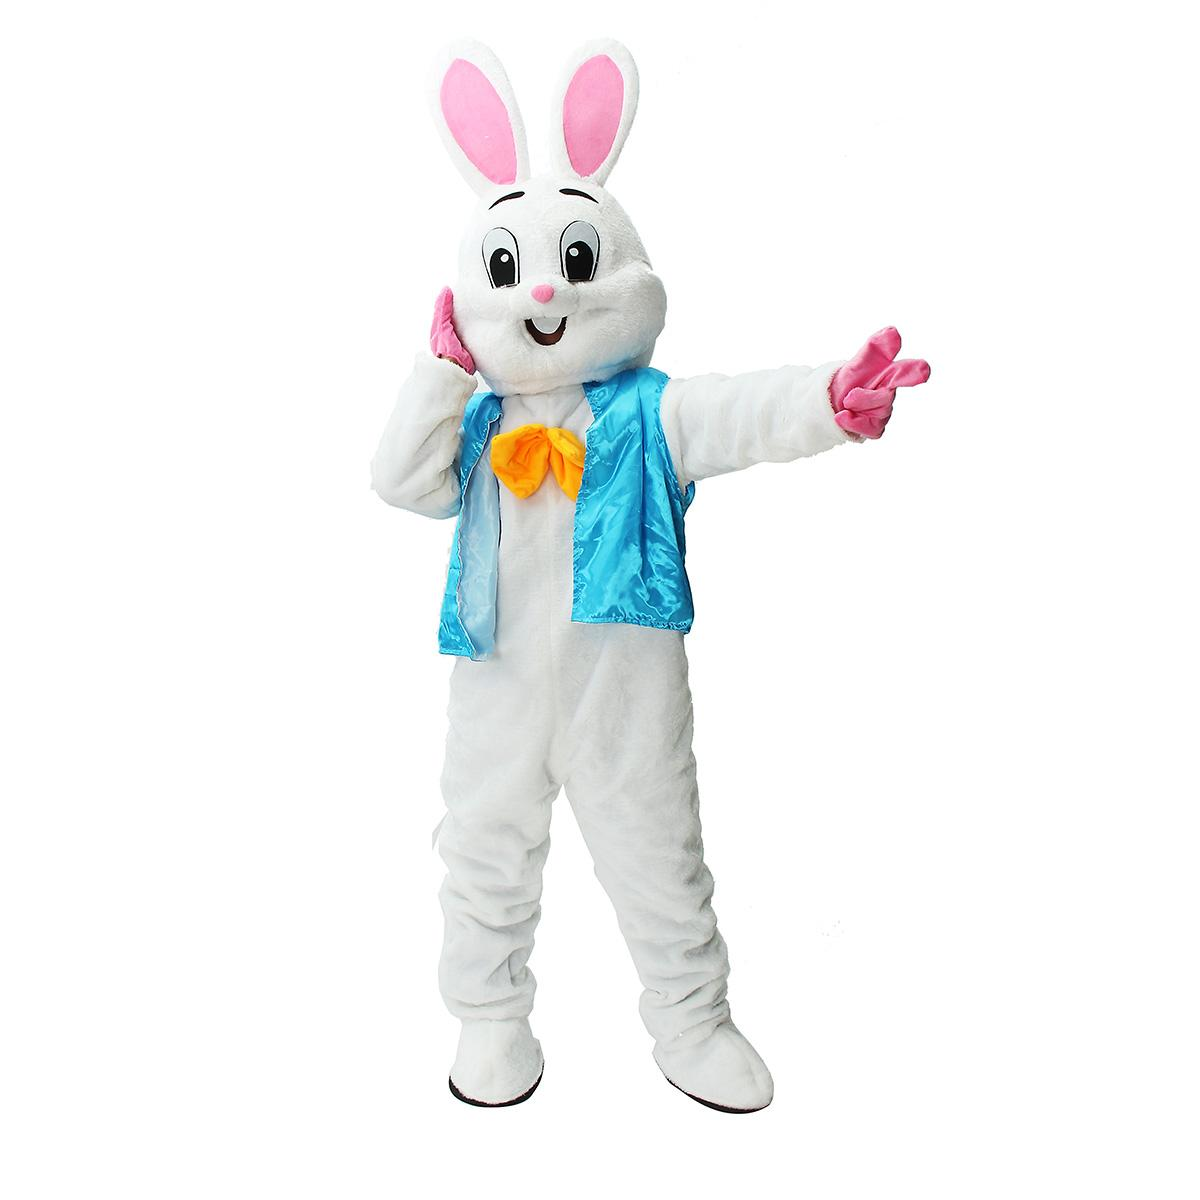 New Professional Easter Bunny Mascot Costume Bugs Rabbit Cartoon Fancy Dress Adult Size Cartoon Suit For Event Party Decor